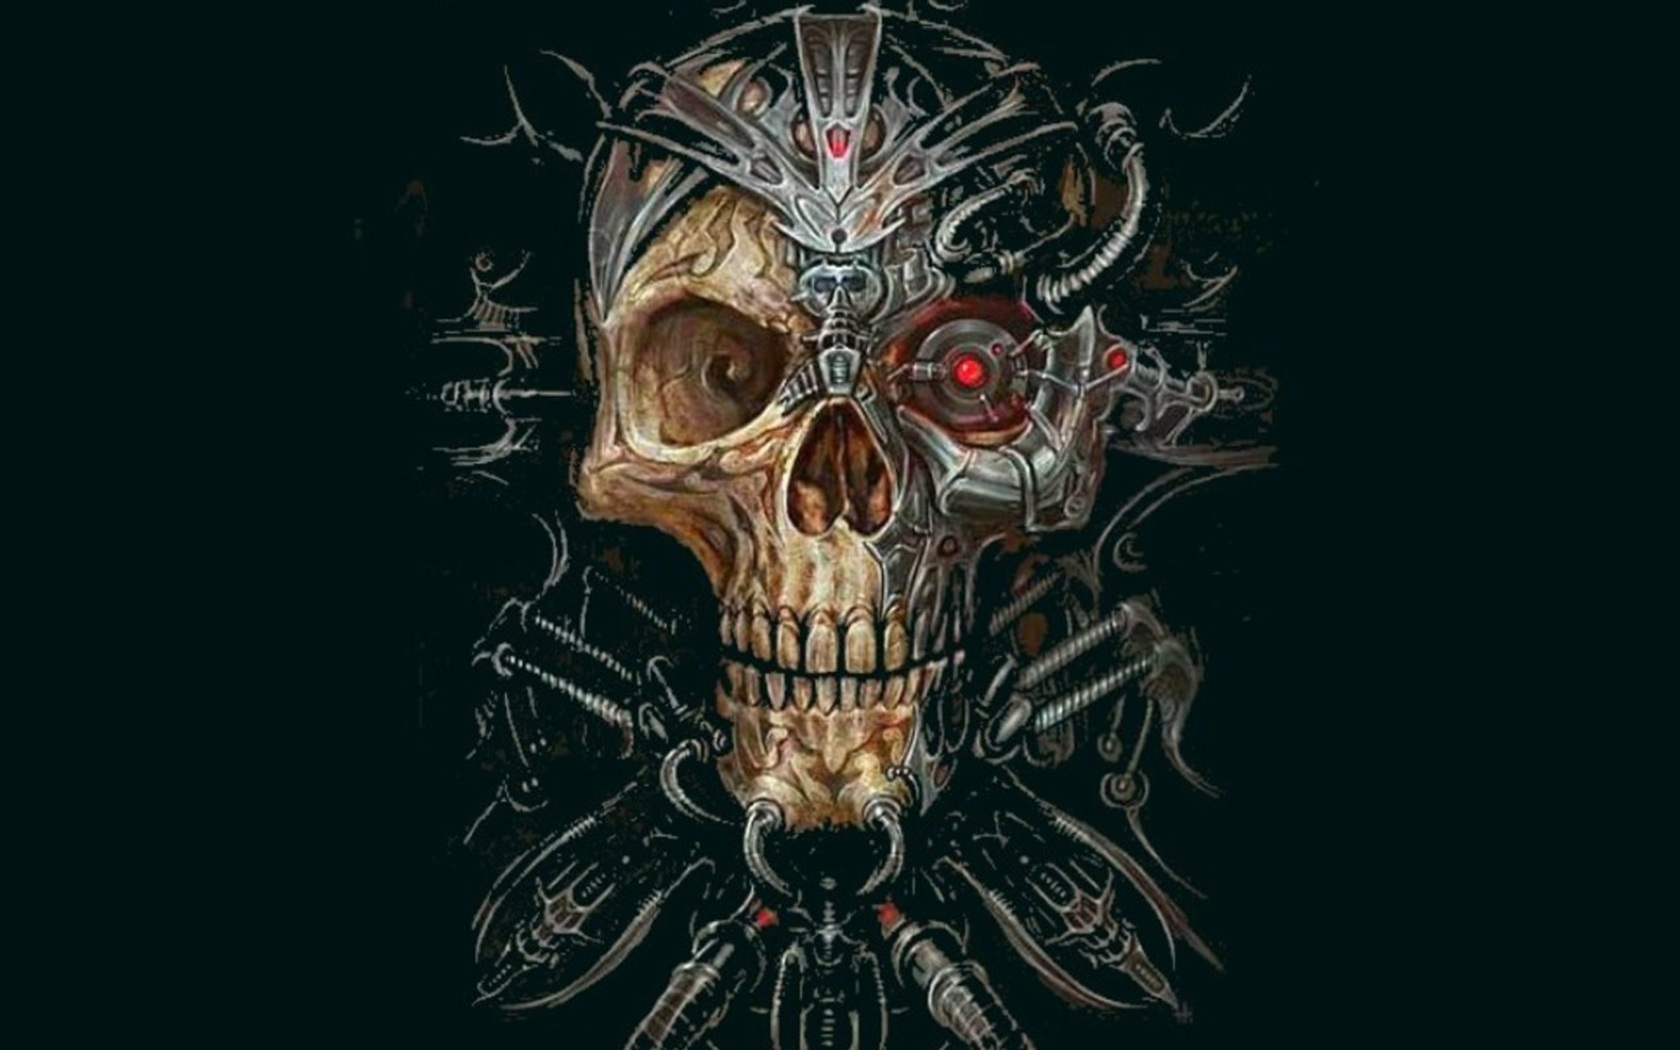 Skull Wallpaper and Background   1680x1050   ID:249836